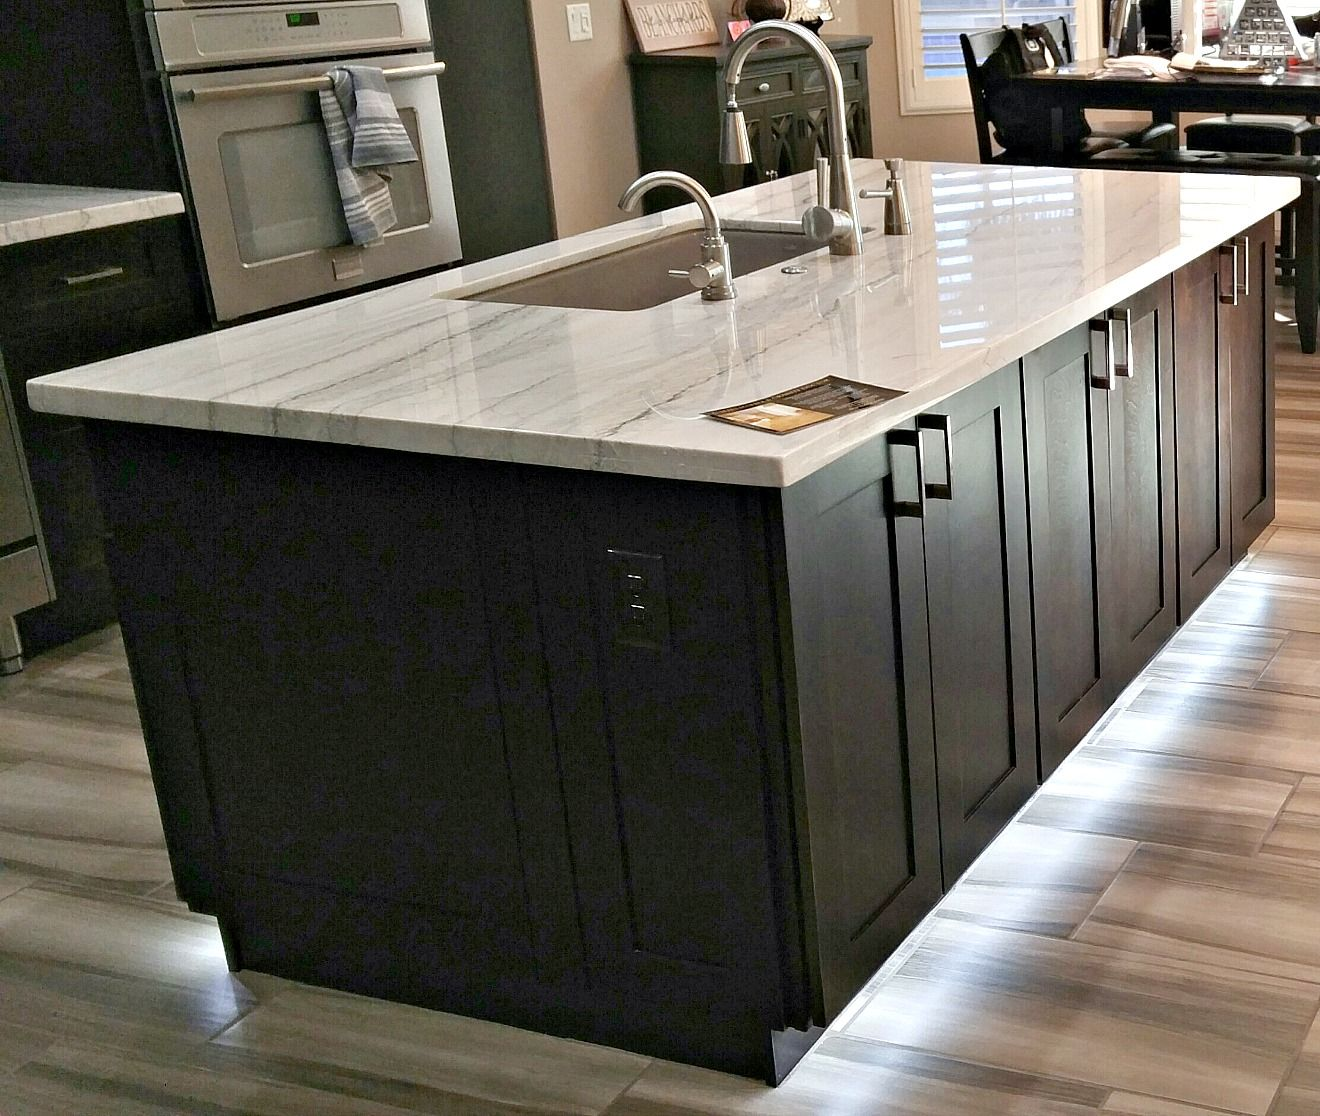 Stunning Island With Macaubus White Marble, Flat Polish Edge, And Stainless  Steel Under Mount